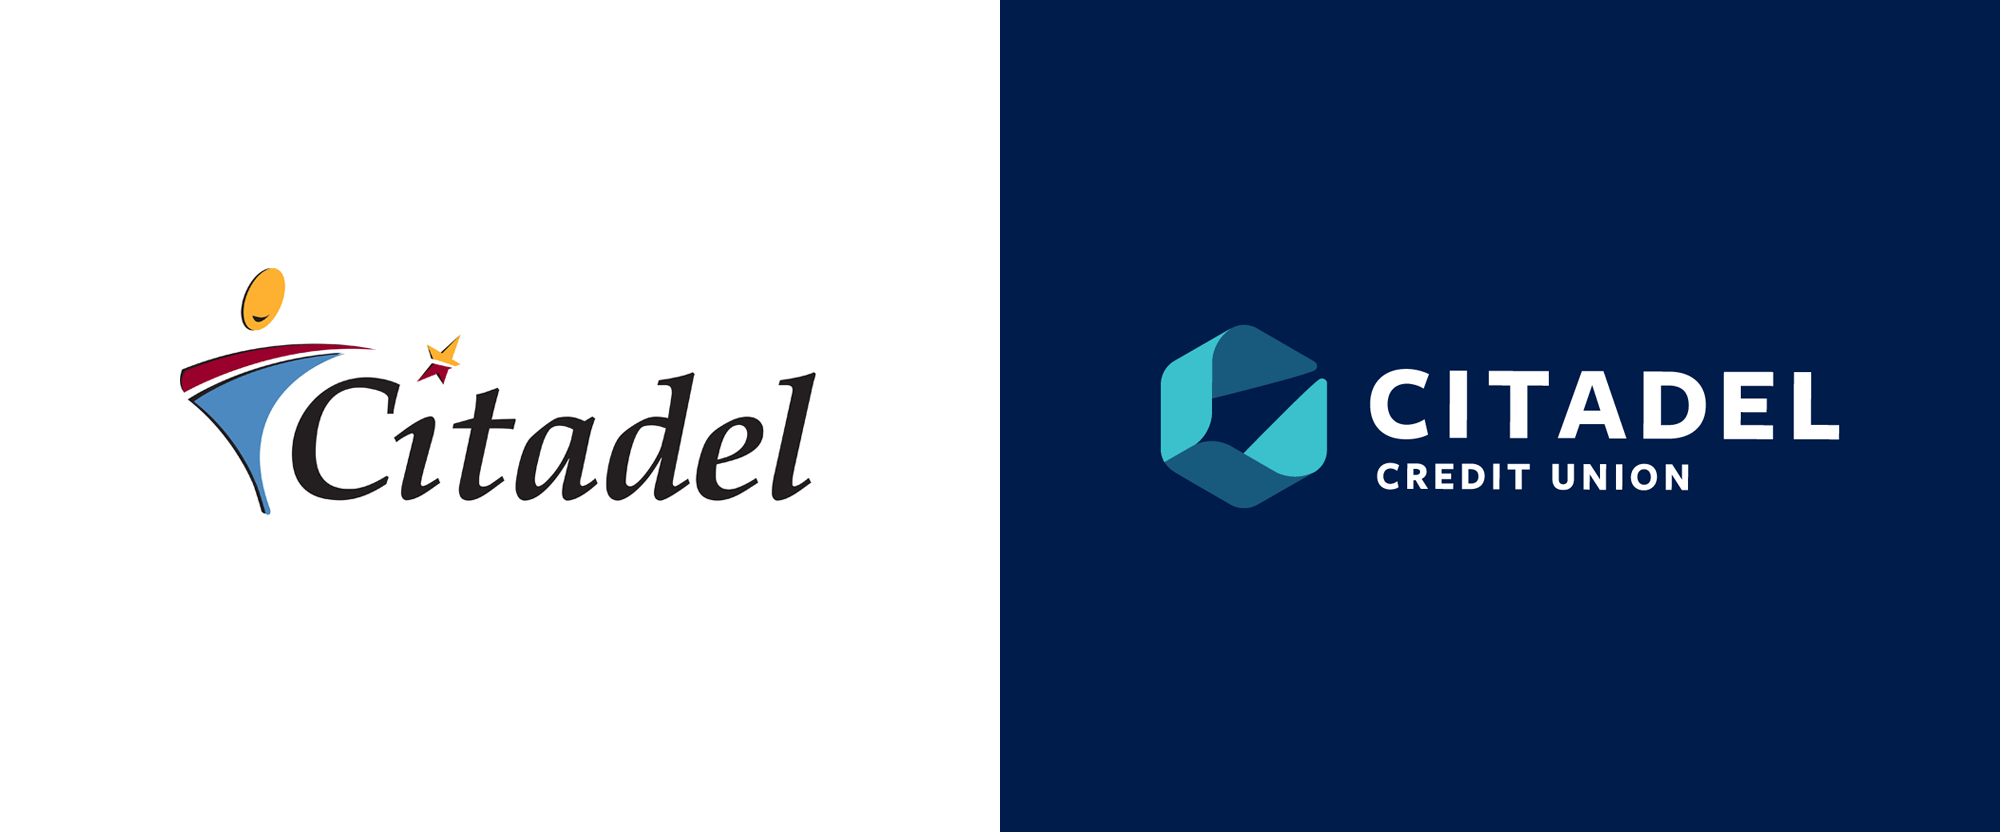 New Logo for Citadel Credit Union by Adrenaline and In-house